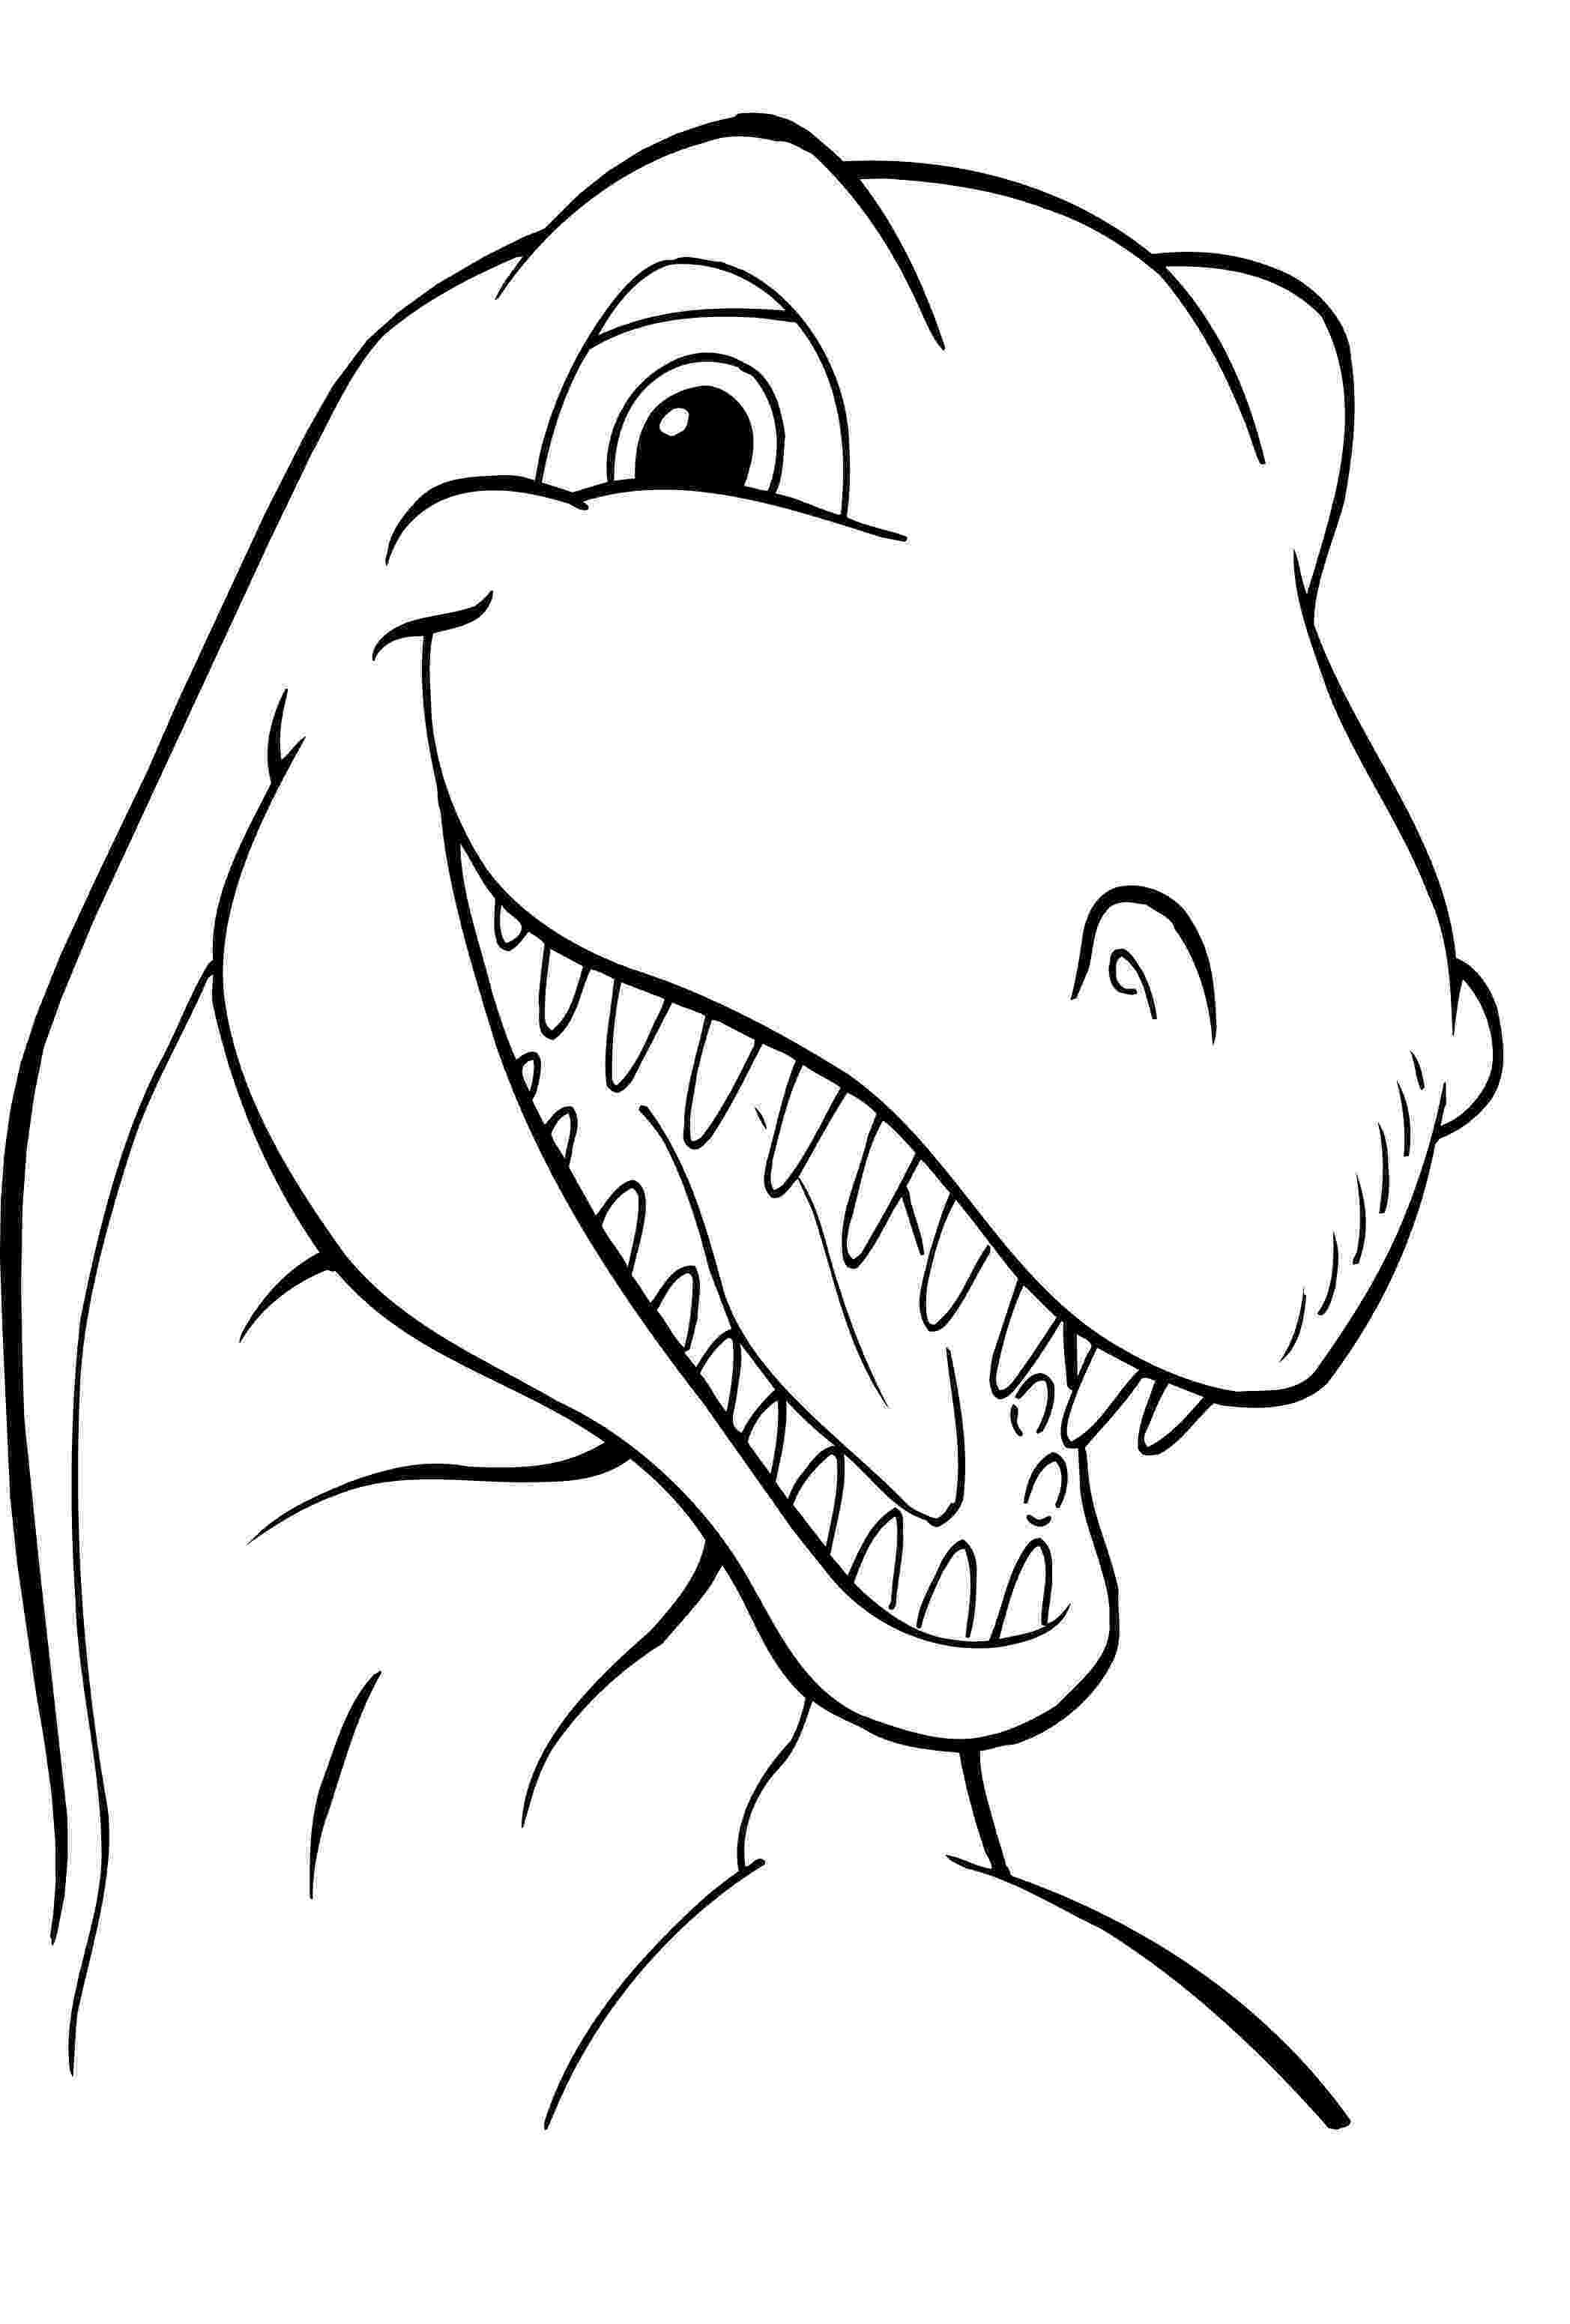 dinosaur sheets the good dinosaur coloring pages simply being mommy dinosaur sheets